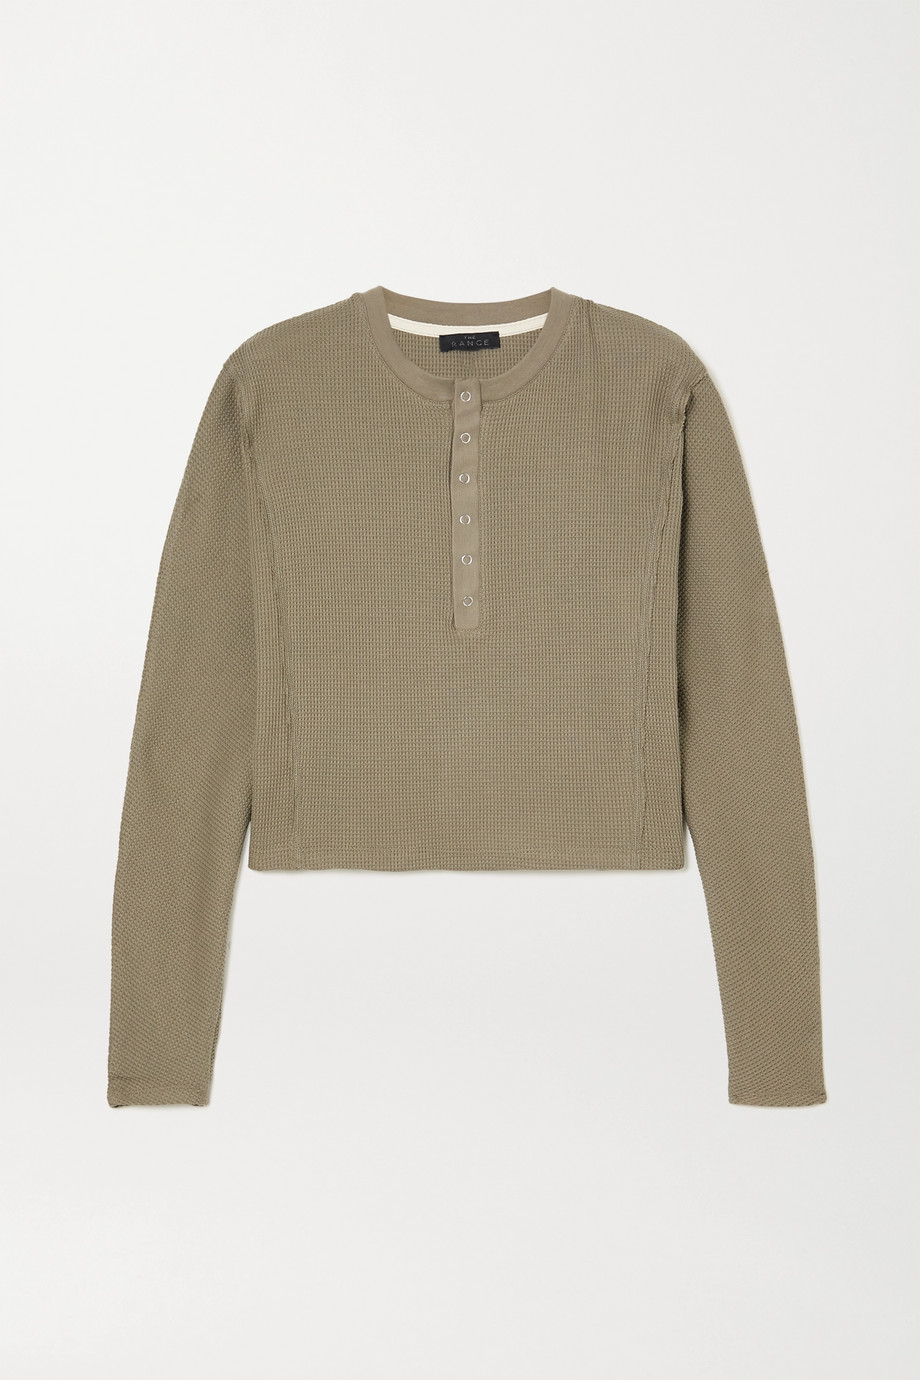 The Range Waffle-knit cotton-blend top